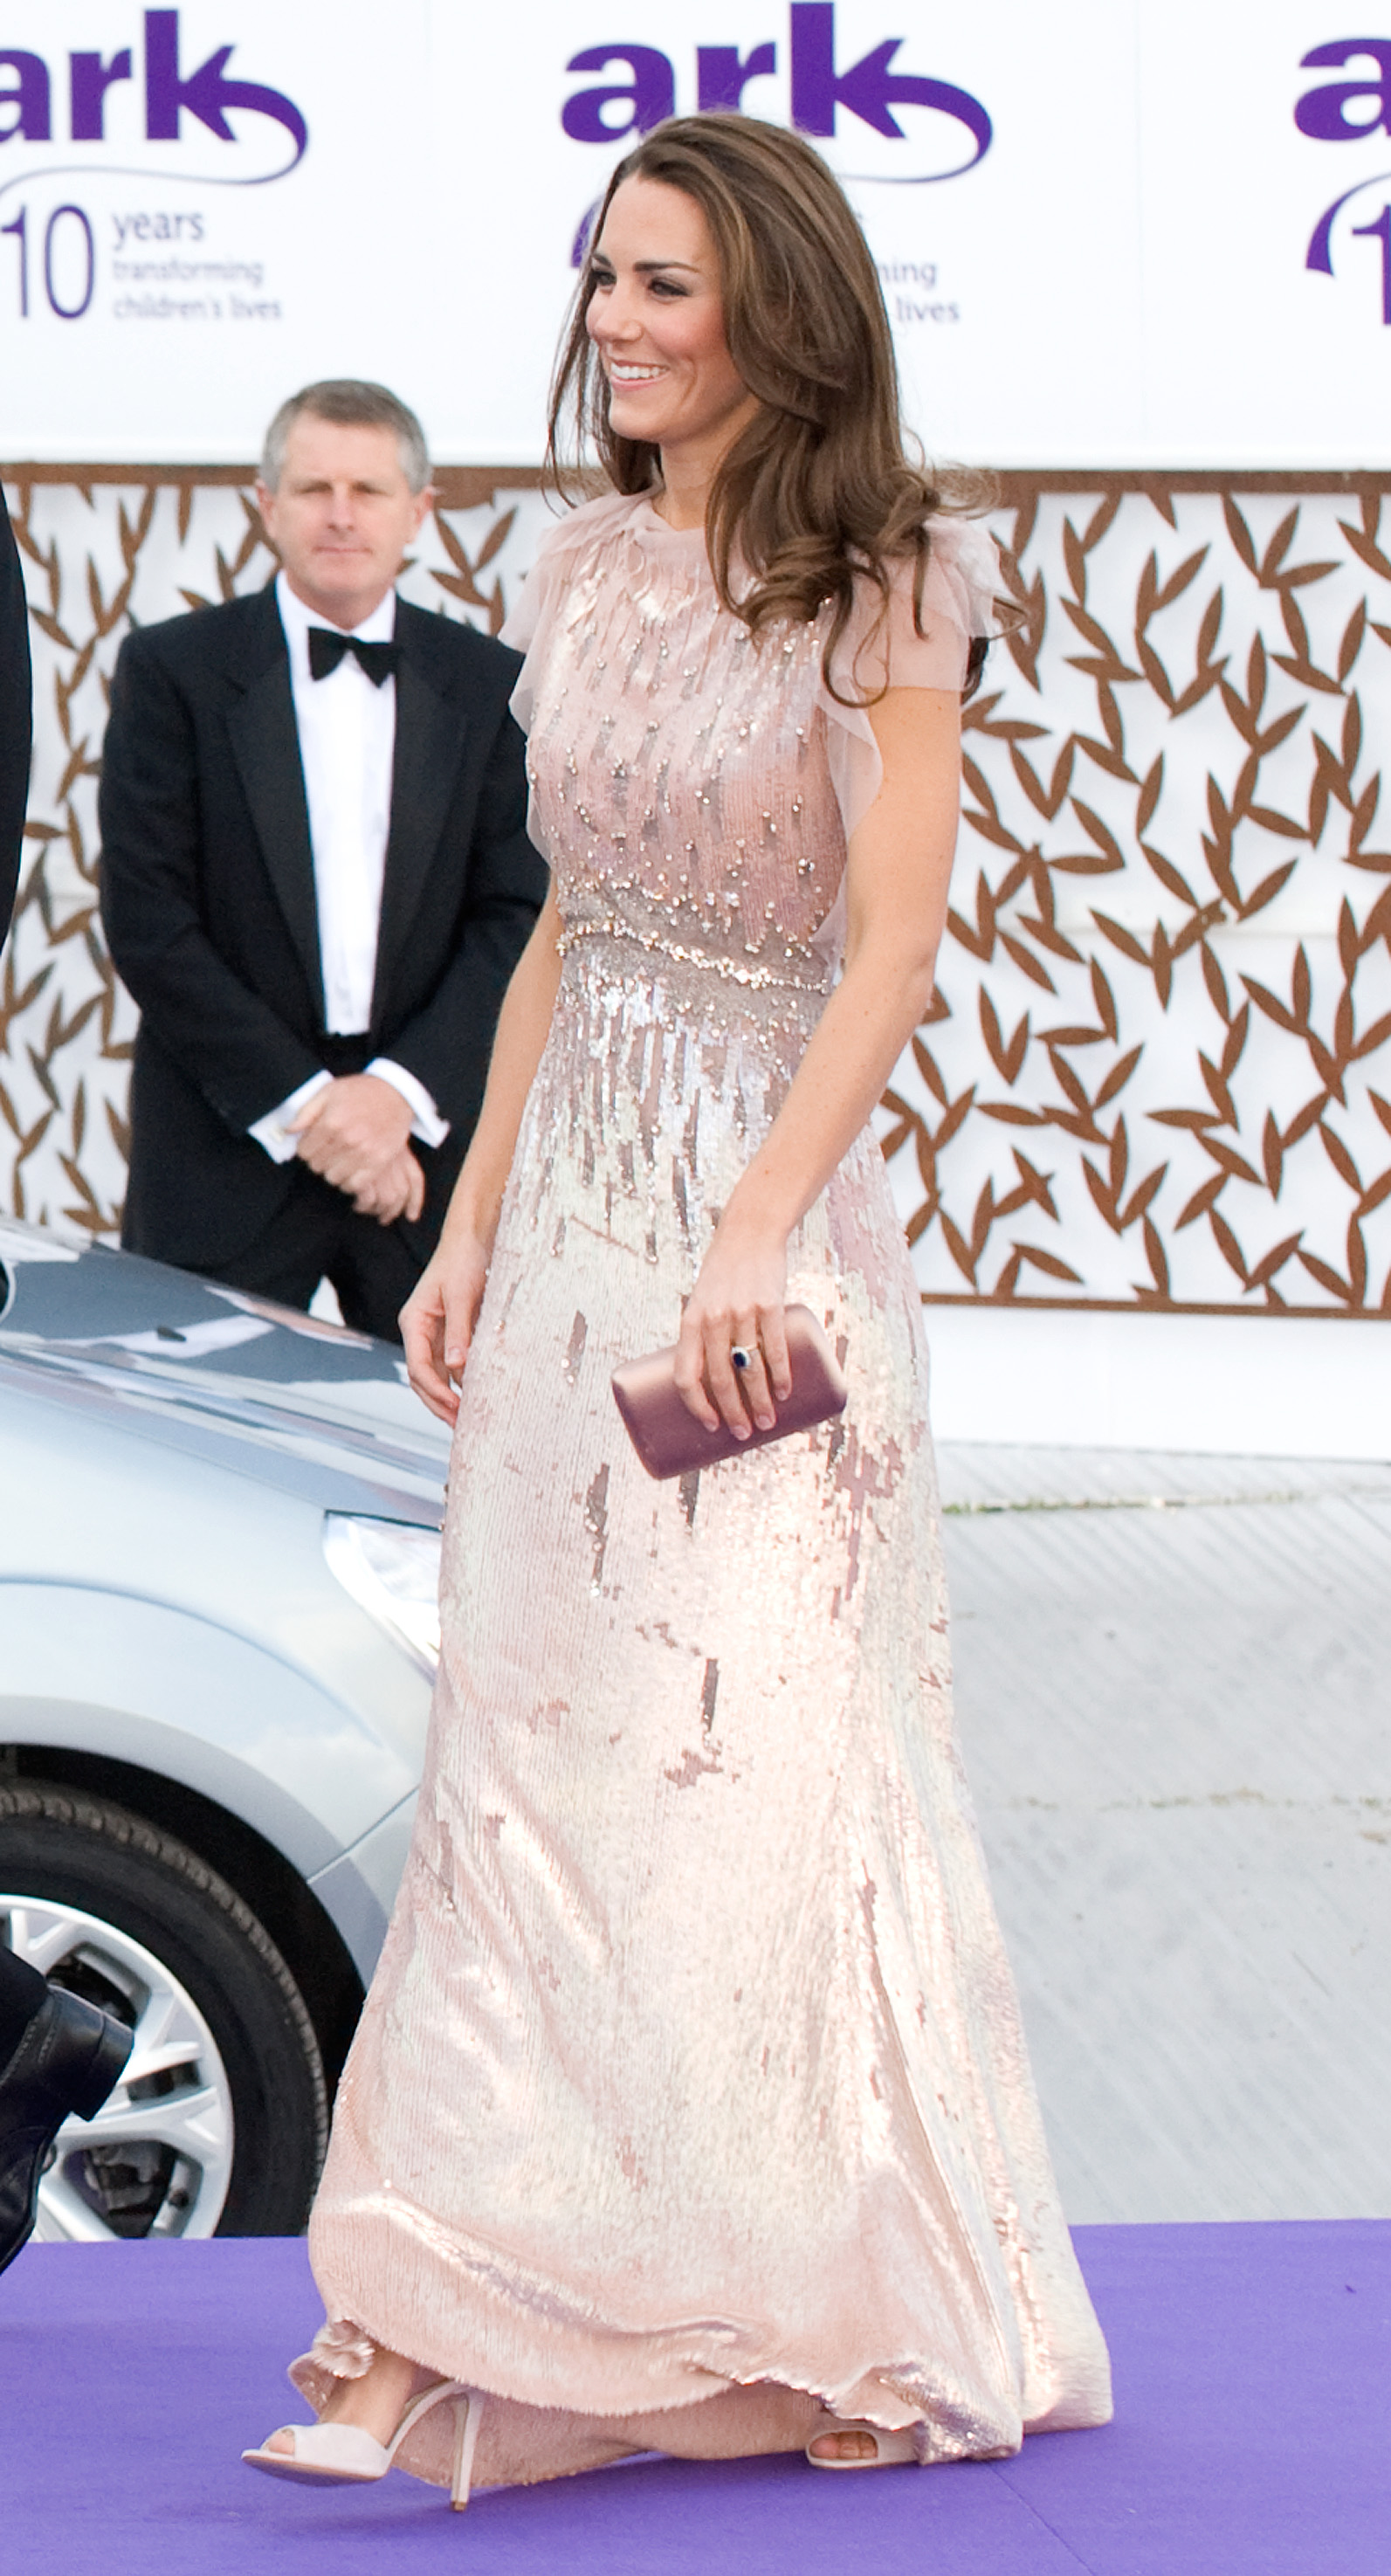 <strong>Princess in Pink</strong>                                   In her most regal fashion moment to date, Middleton wore a sparkly Jenny Packham gown to the ARK Gala dinner at Kensington Palace on June 9, 2011.